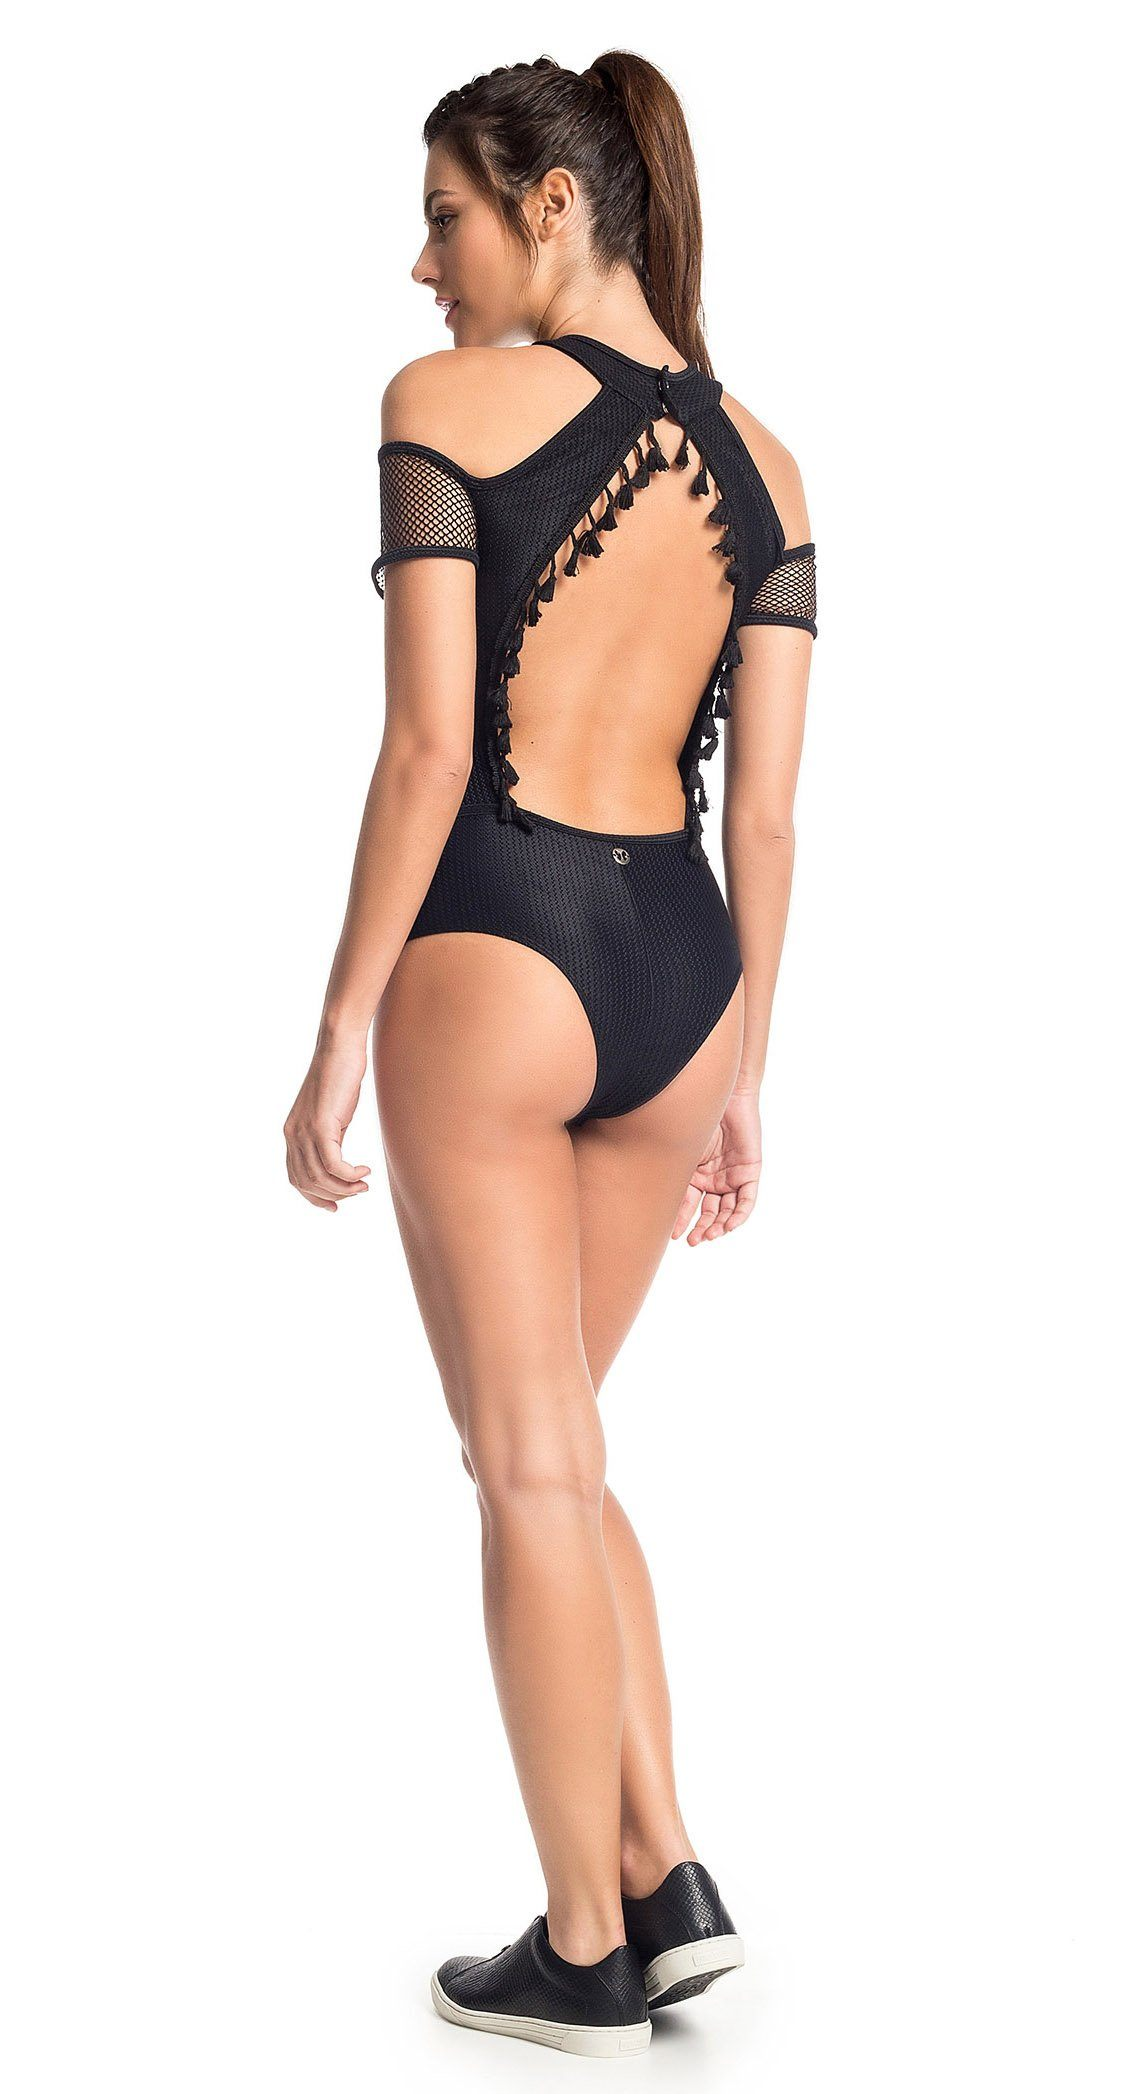 Workout Bodysuit - Body Vision Black - Top Rio Shop 56e470a05a15